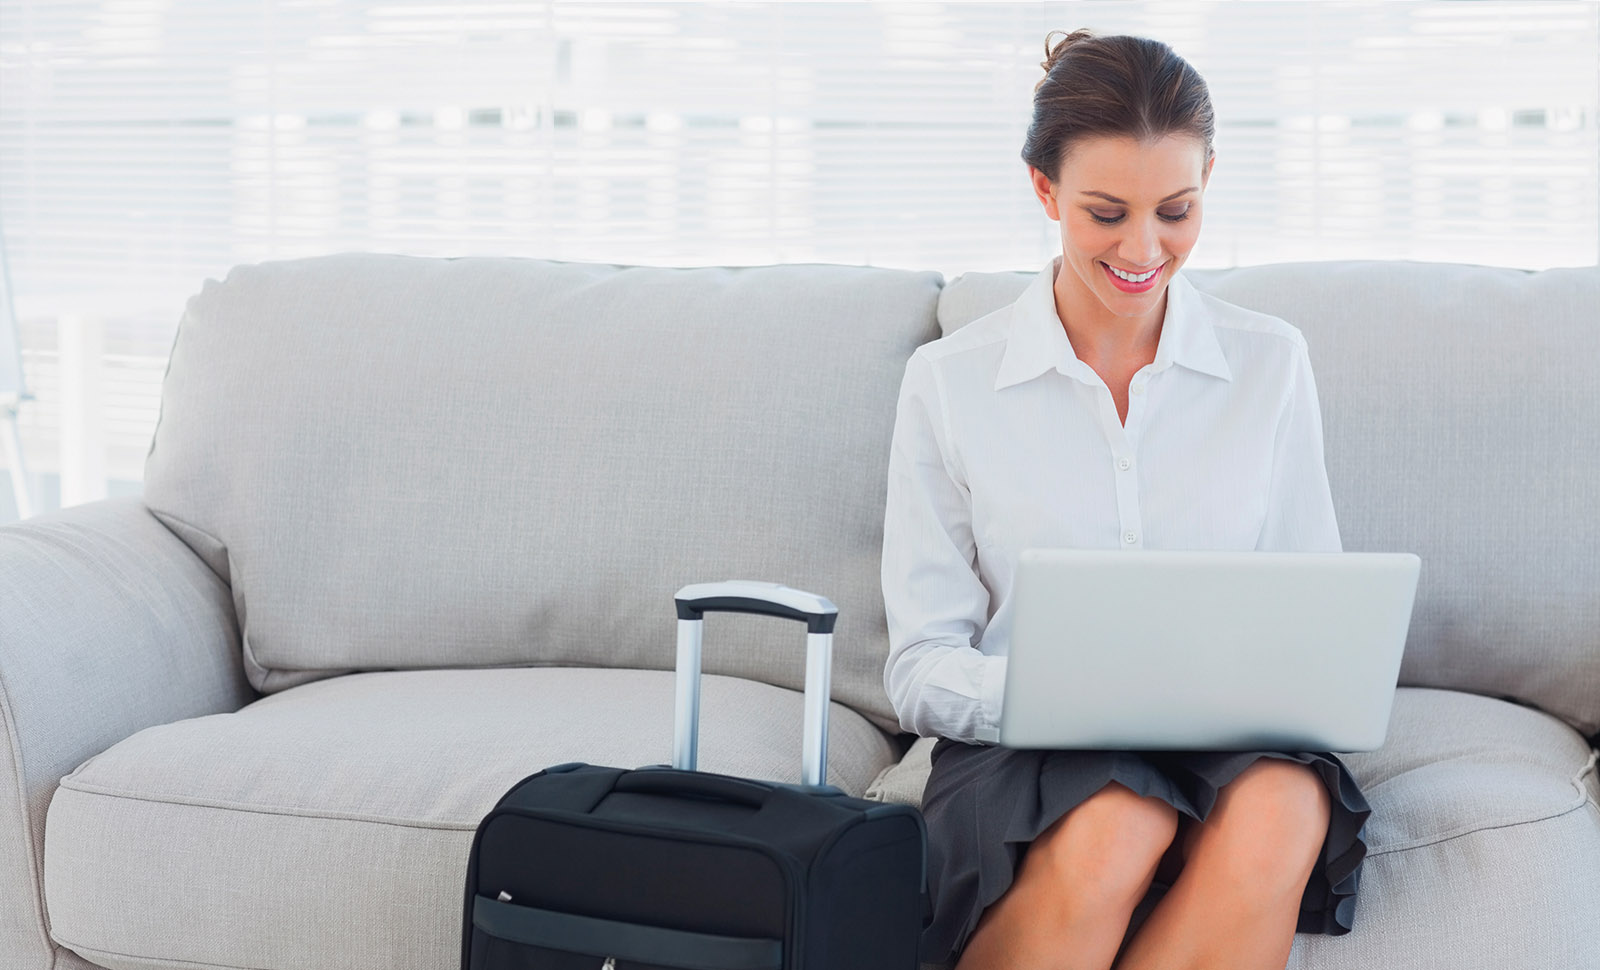 woman sitting on couch in hotel room working on her laptop with her suitcase next to her